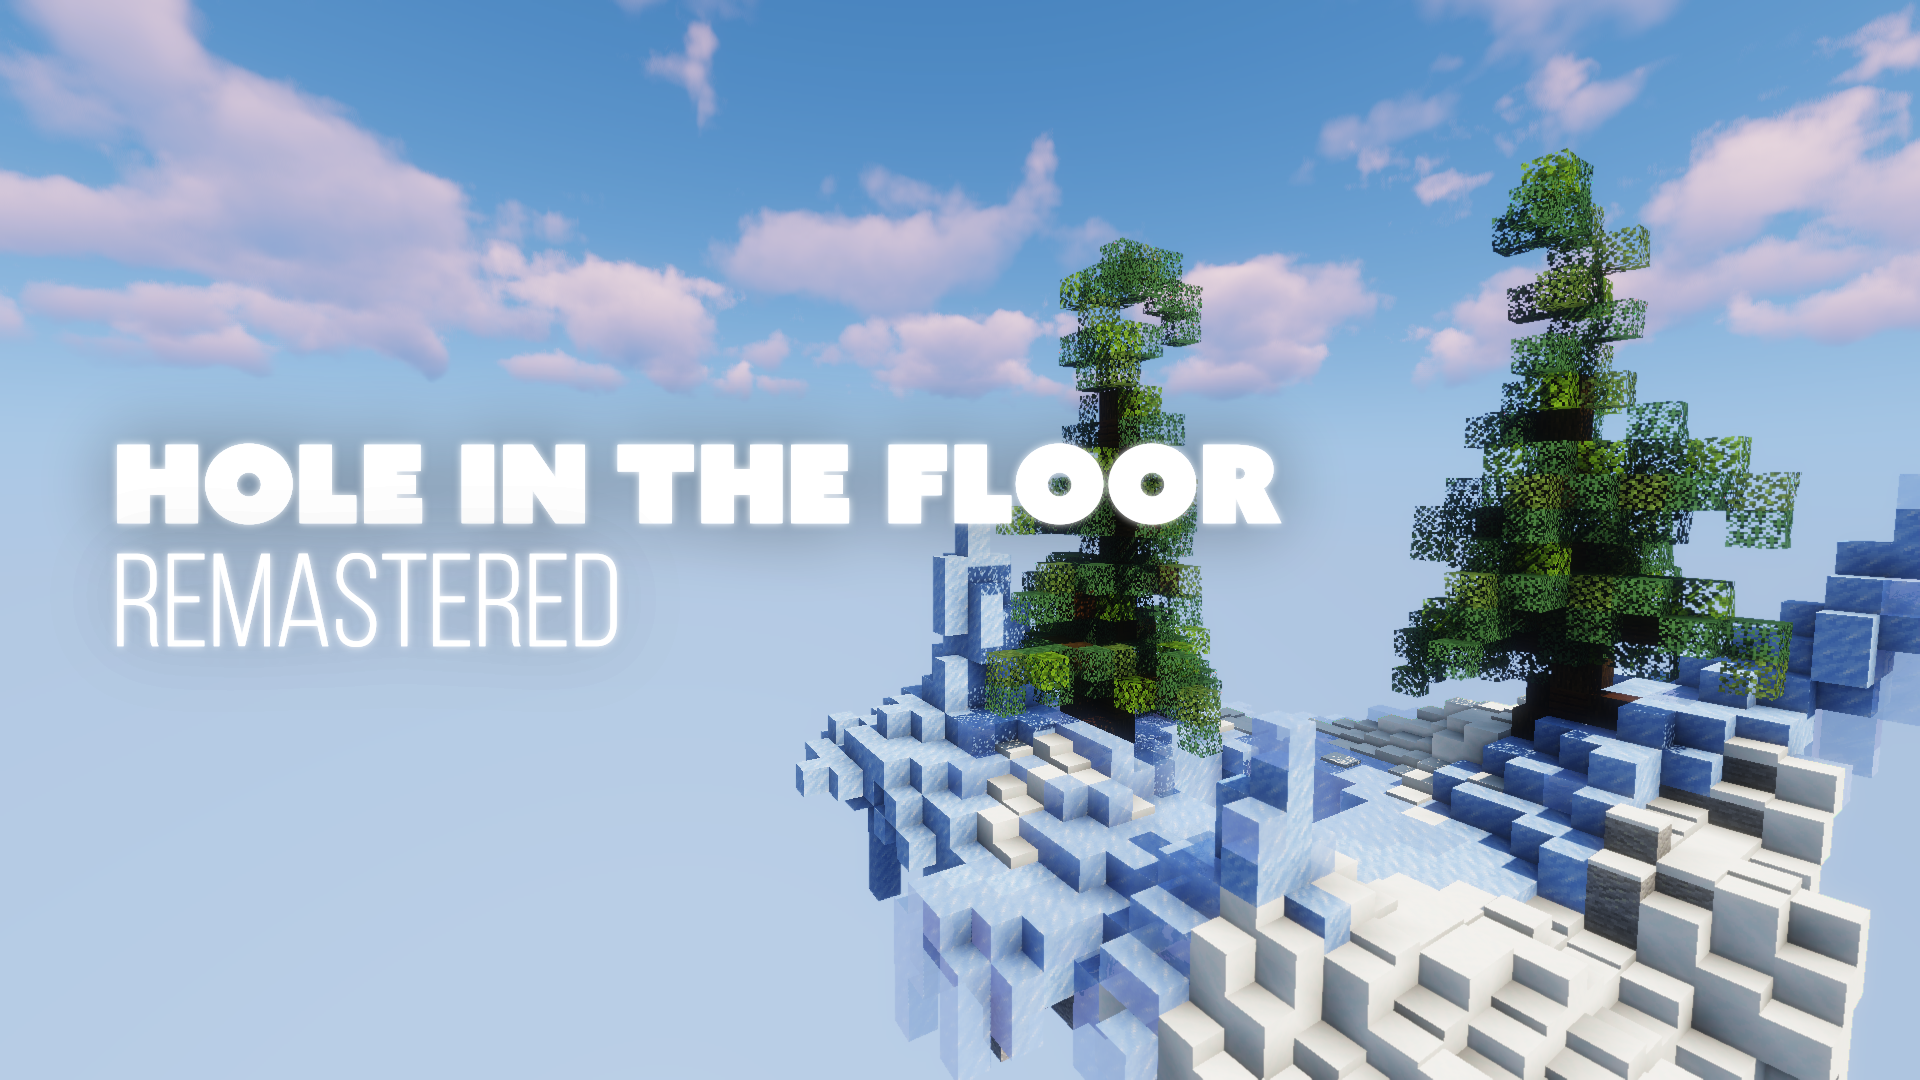 Hole in the Floor Remastered